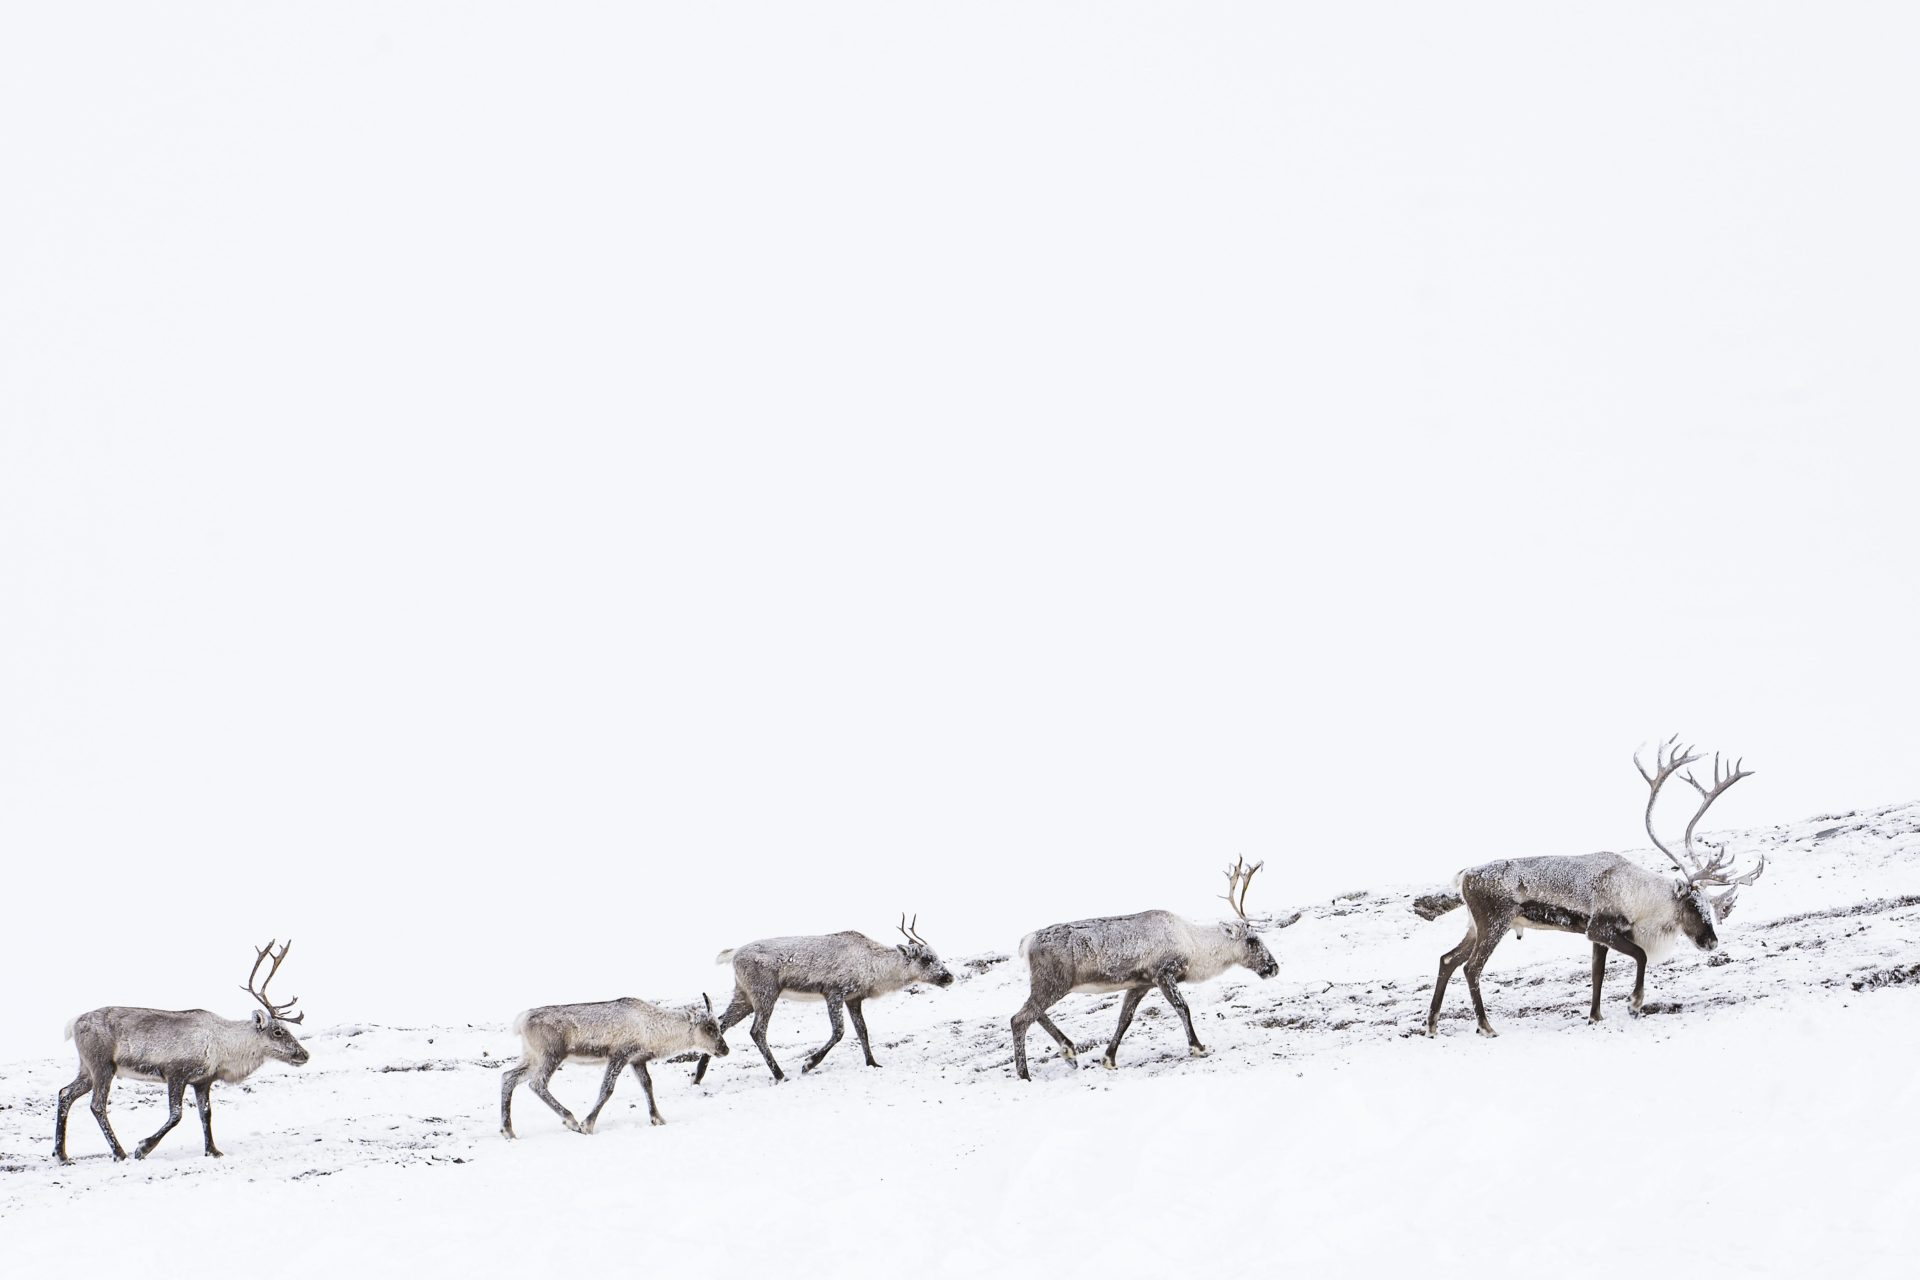 A bull caribou leading a group of caribou in Canada